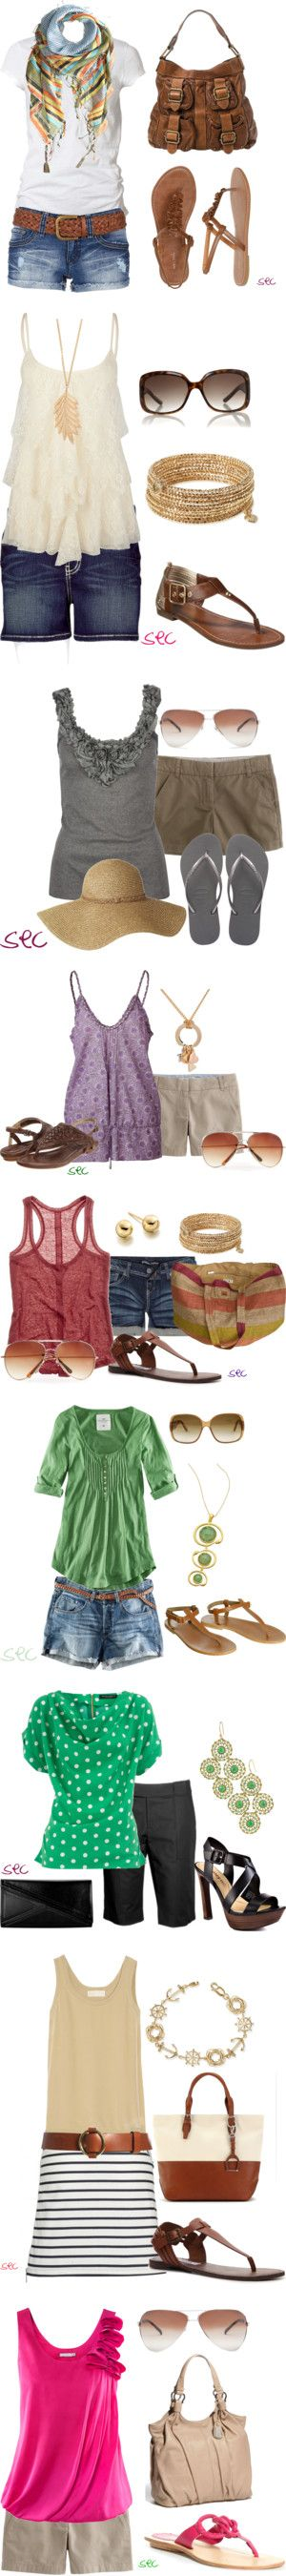 I would wear any of these :)